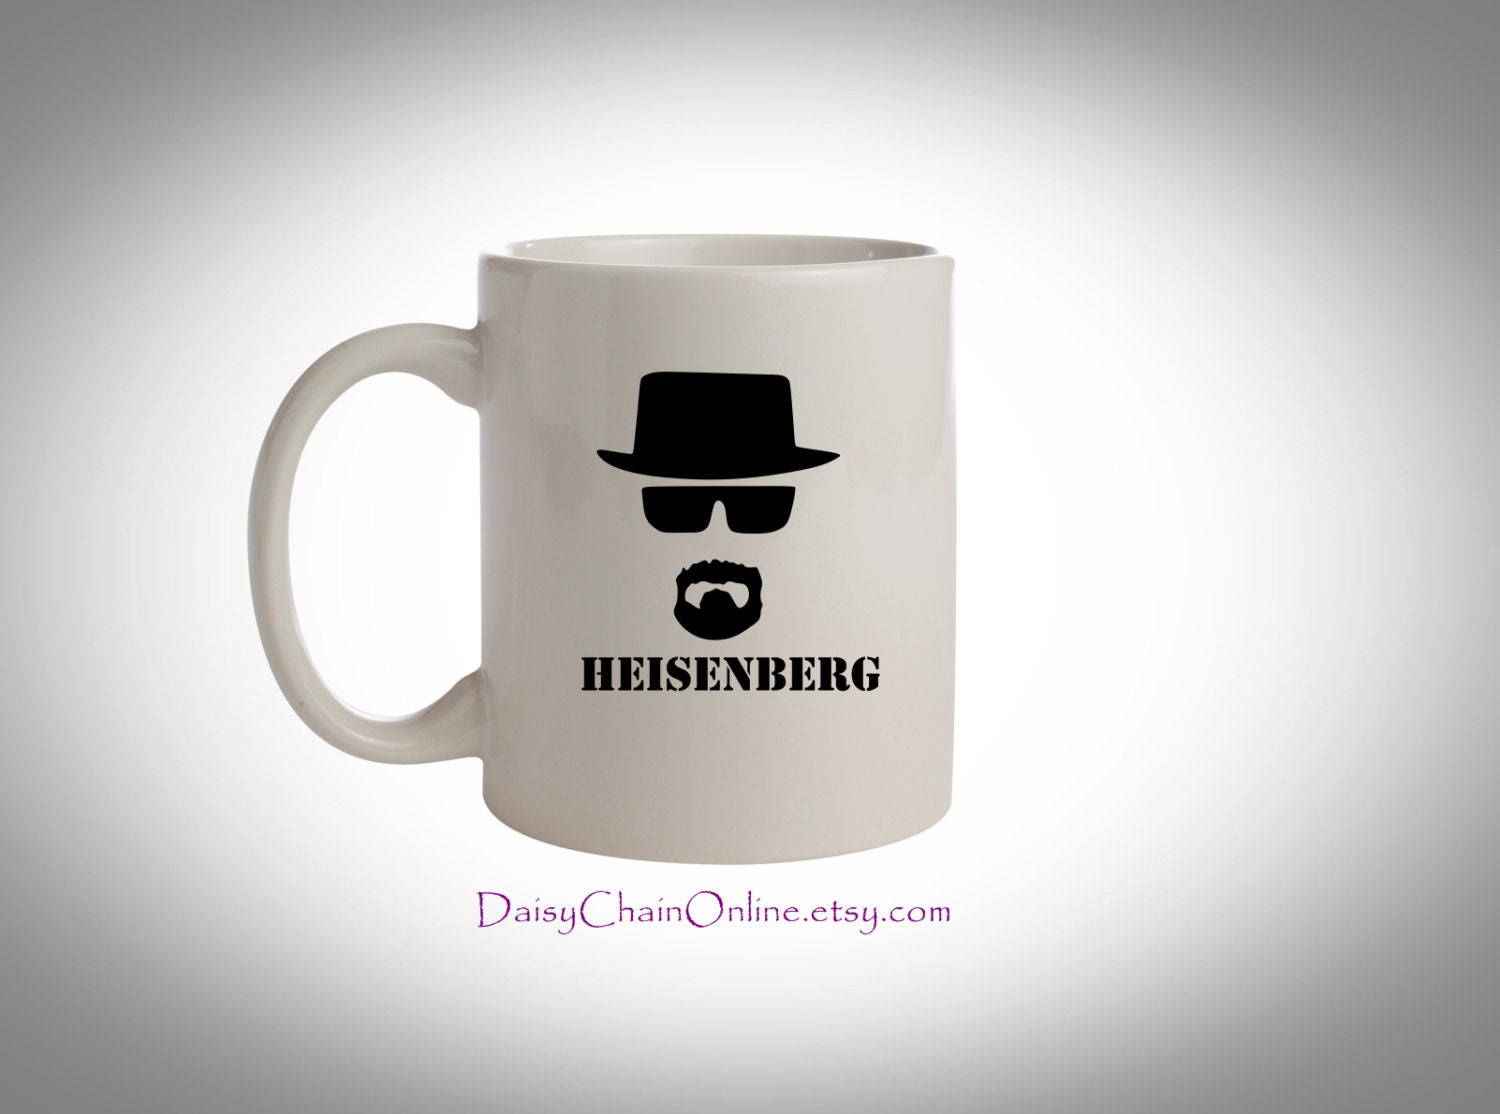 Heisenberg custom coffee mug unique coffee mugs Unique coffee cups mugs